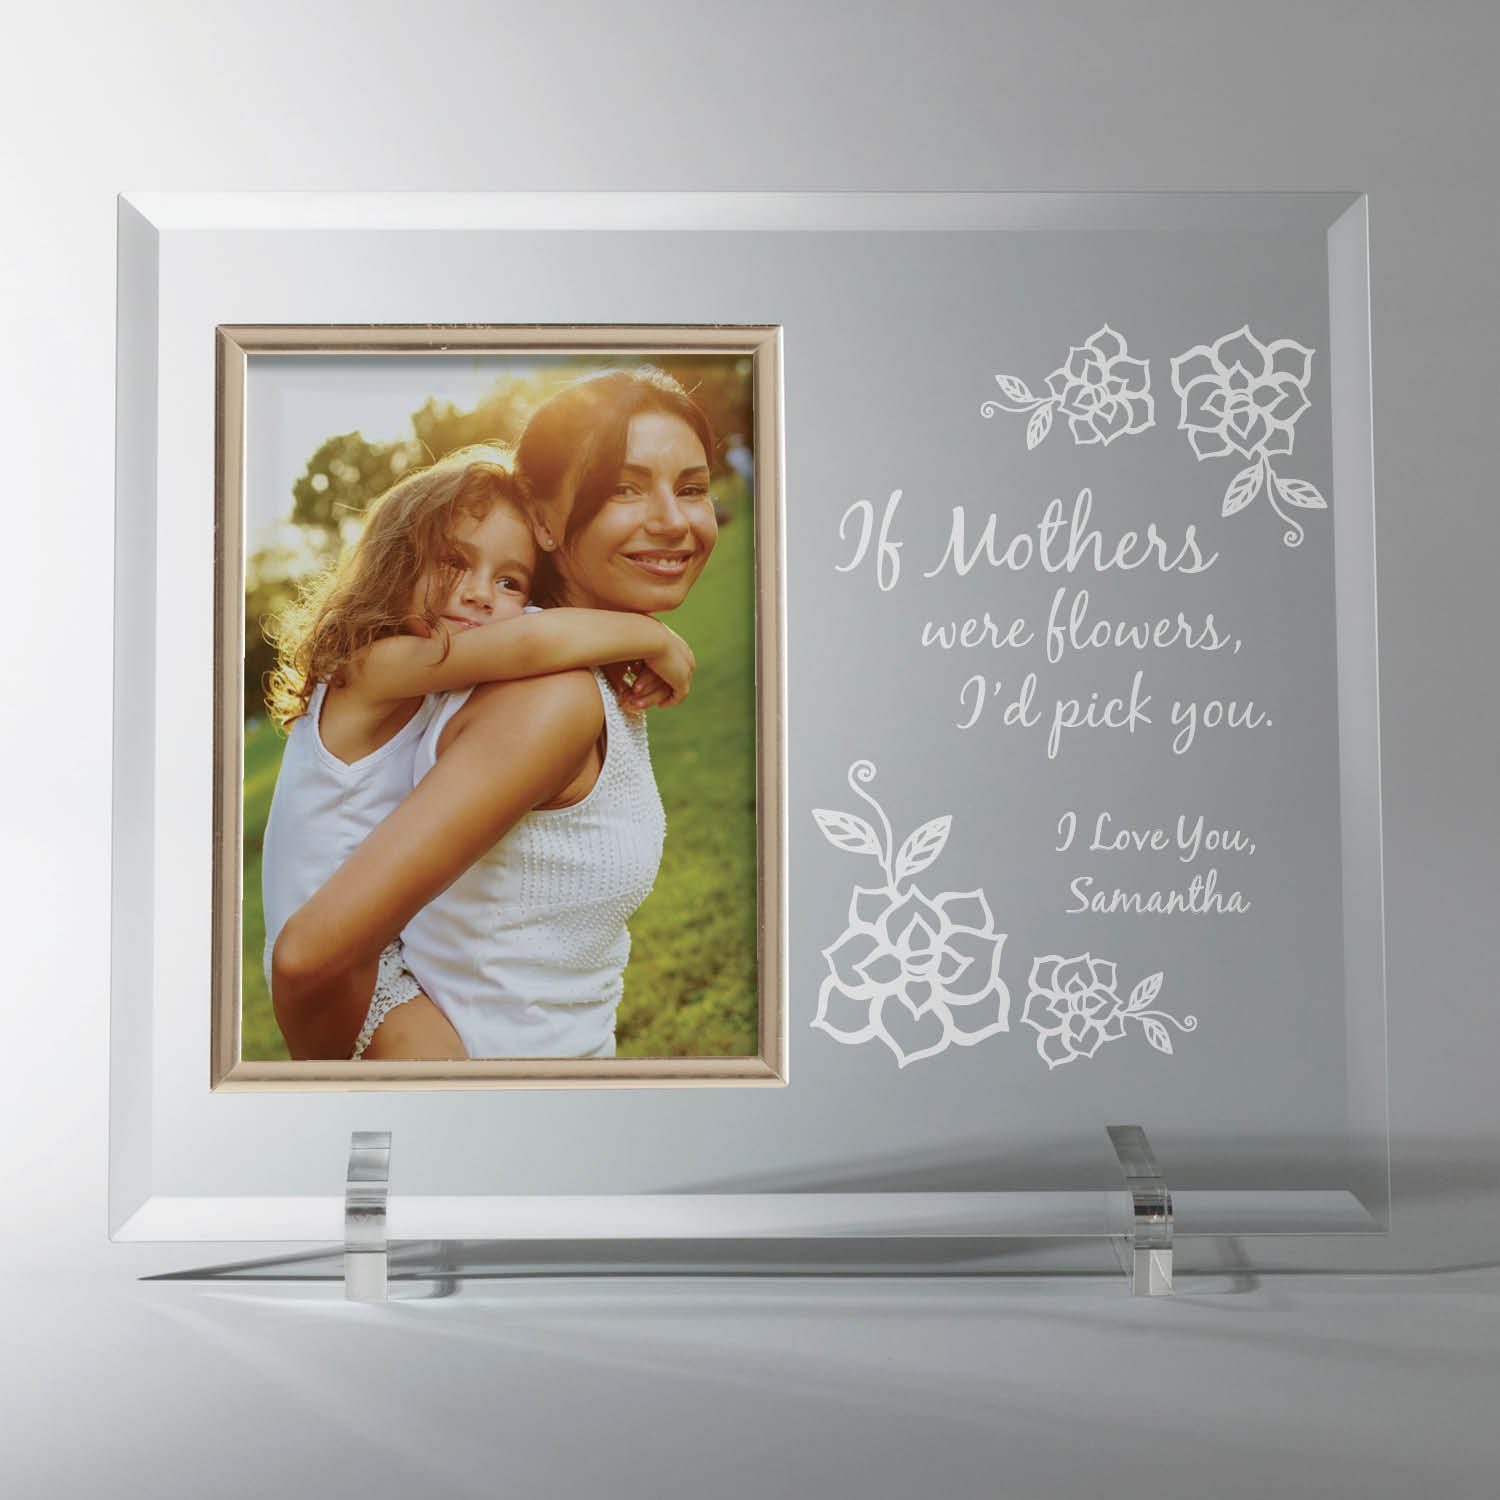 This beautiful personalized glass picture frame will be treasured ...